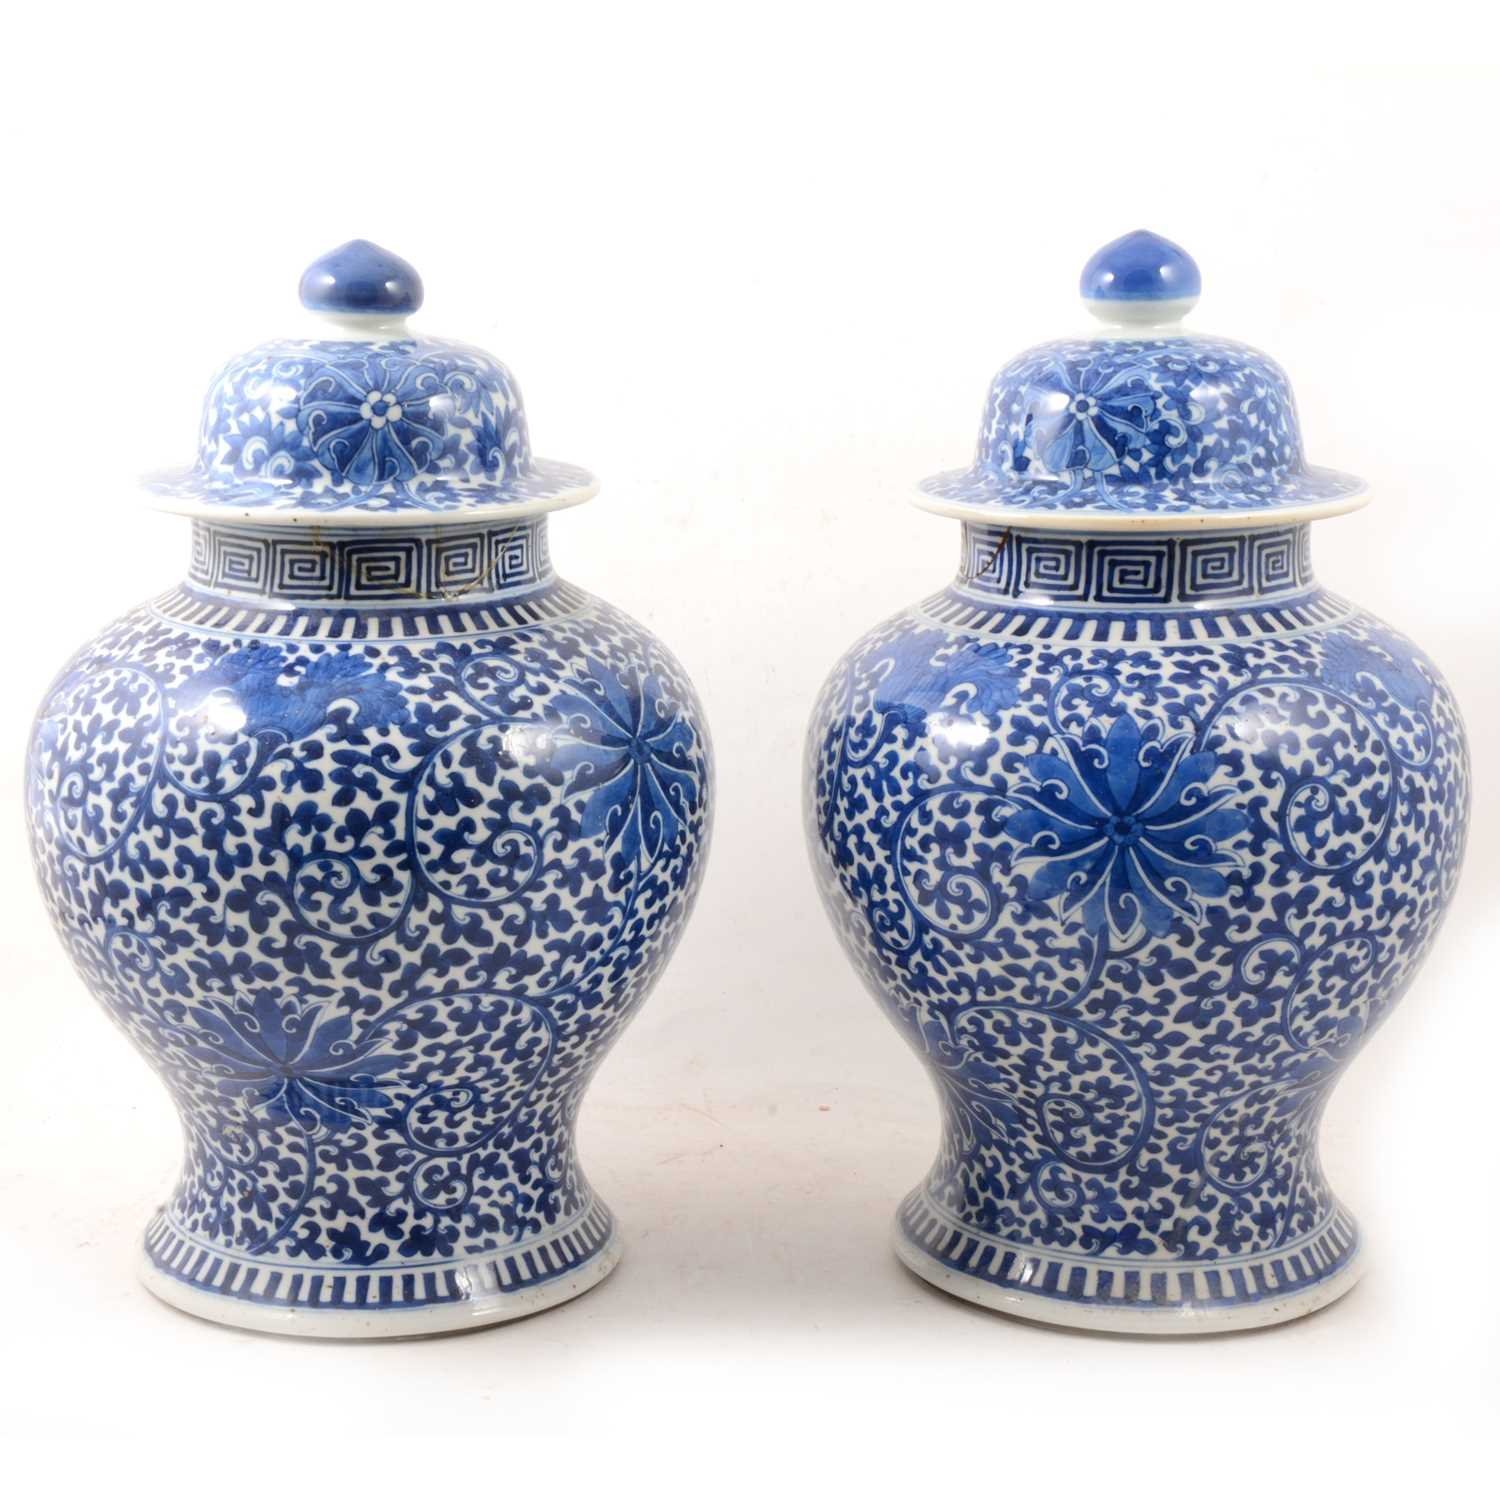 Lot 1 - A pair of Chinese blue and white covered vases